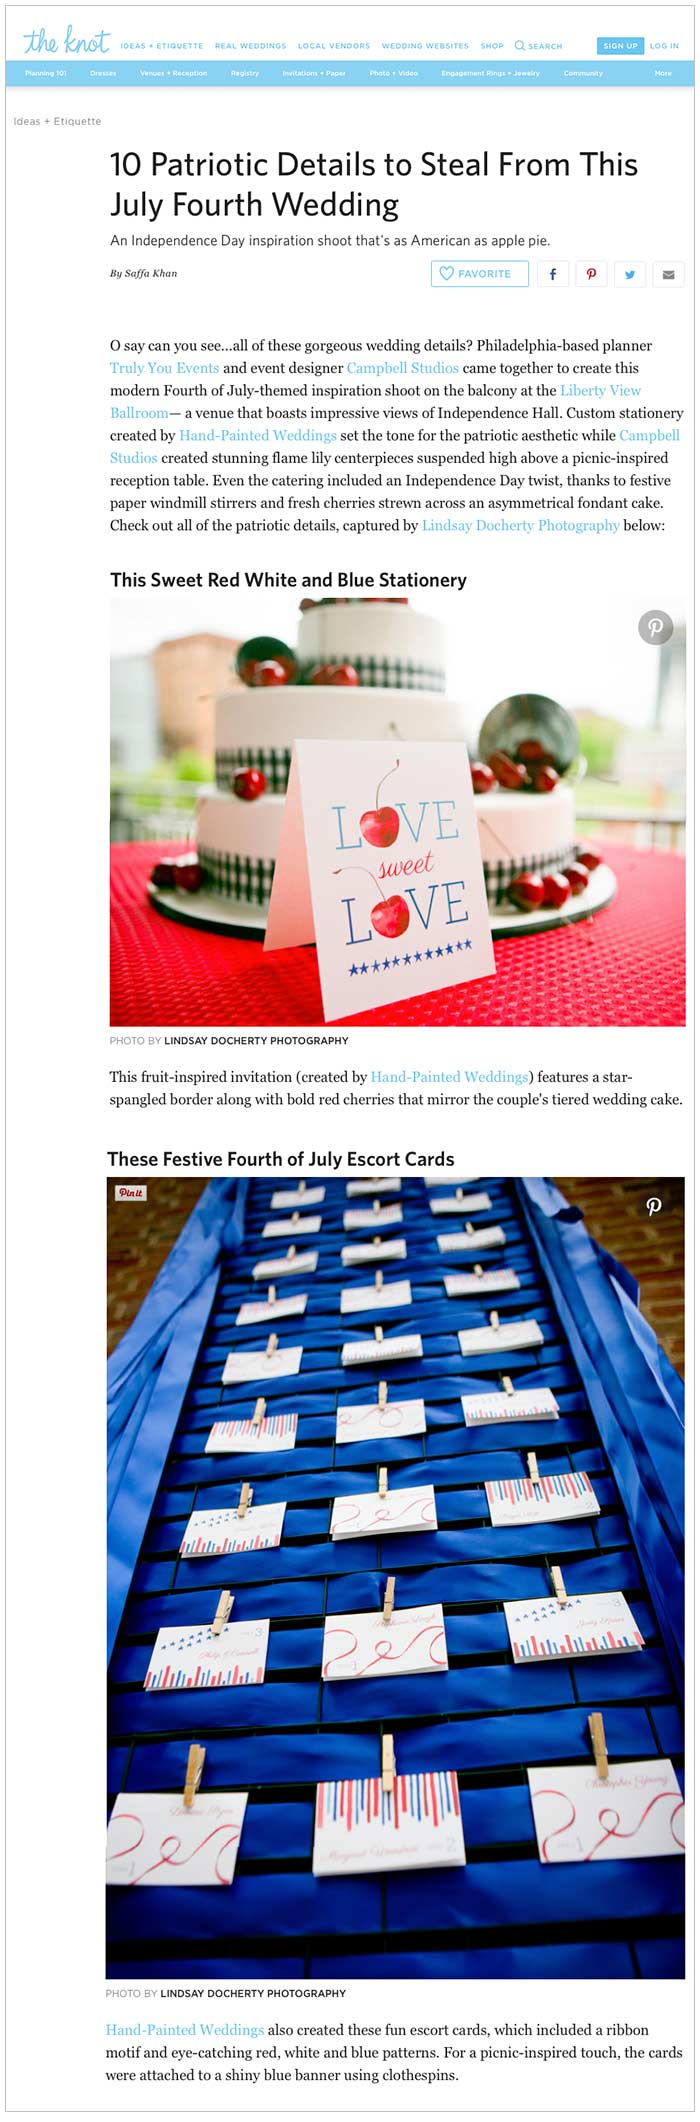 Patriotic Ideas featured on the Knot